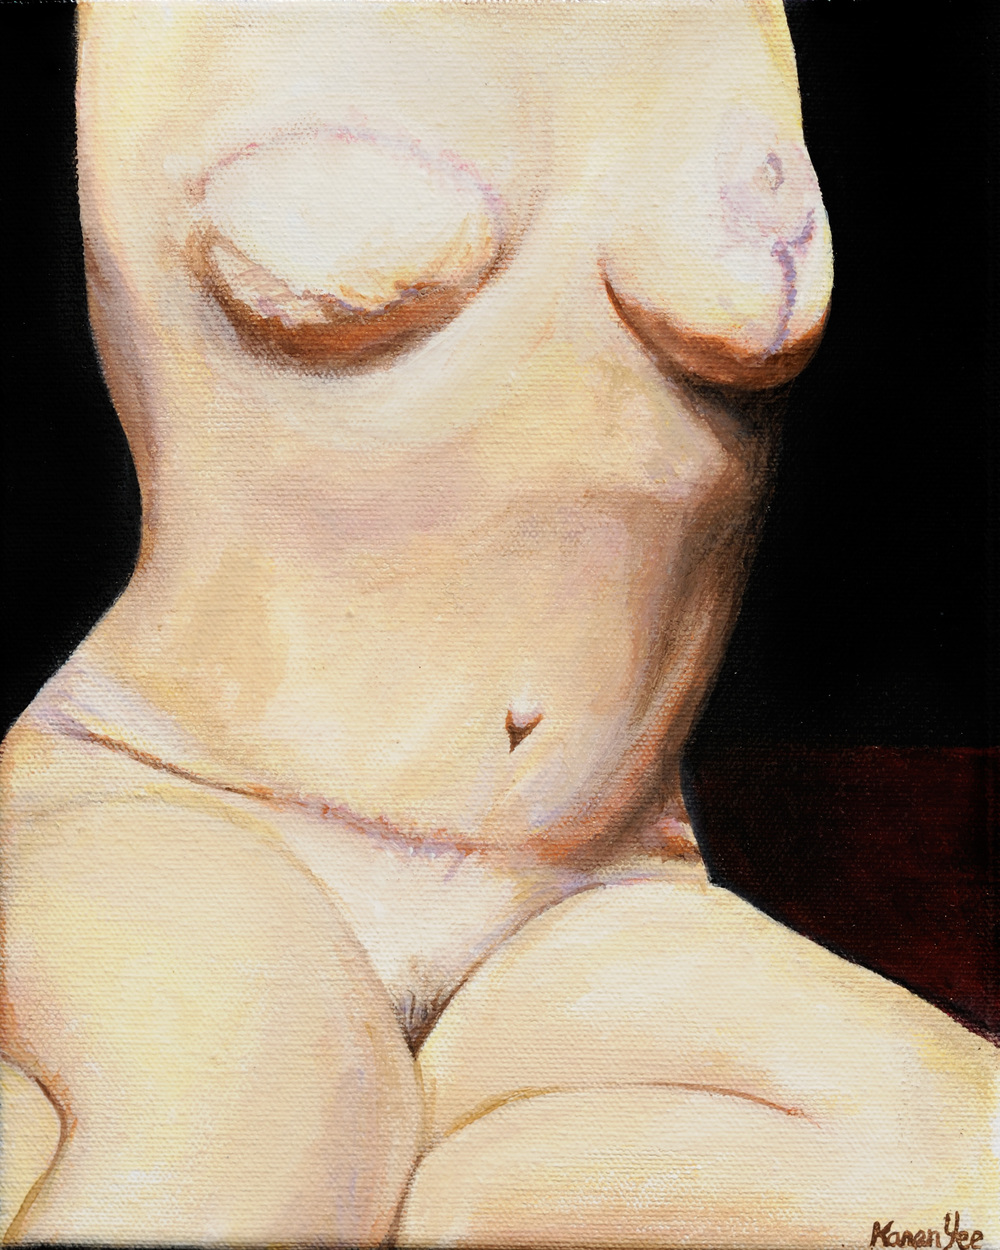 Karen Yee  |  Self-portrait – Survivor  |  2008  |  Acrylic on Canvas  |  10 x 8 inches or 25 ½ x 20 ¼ cm